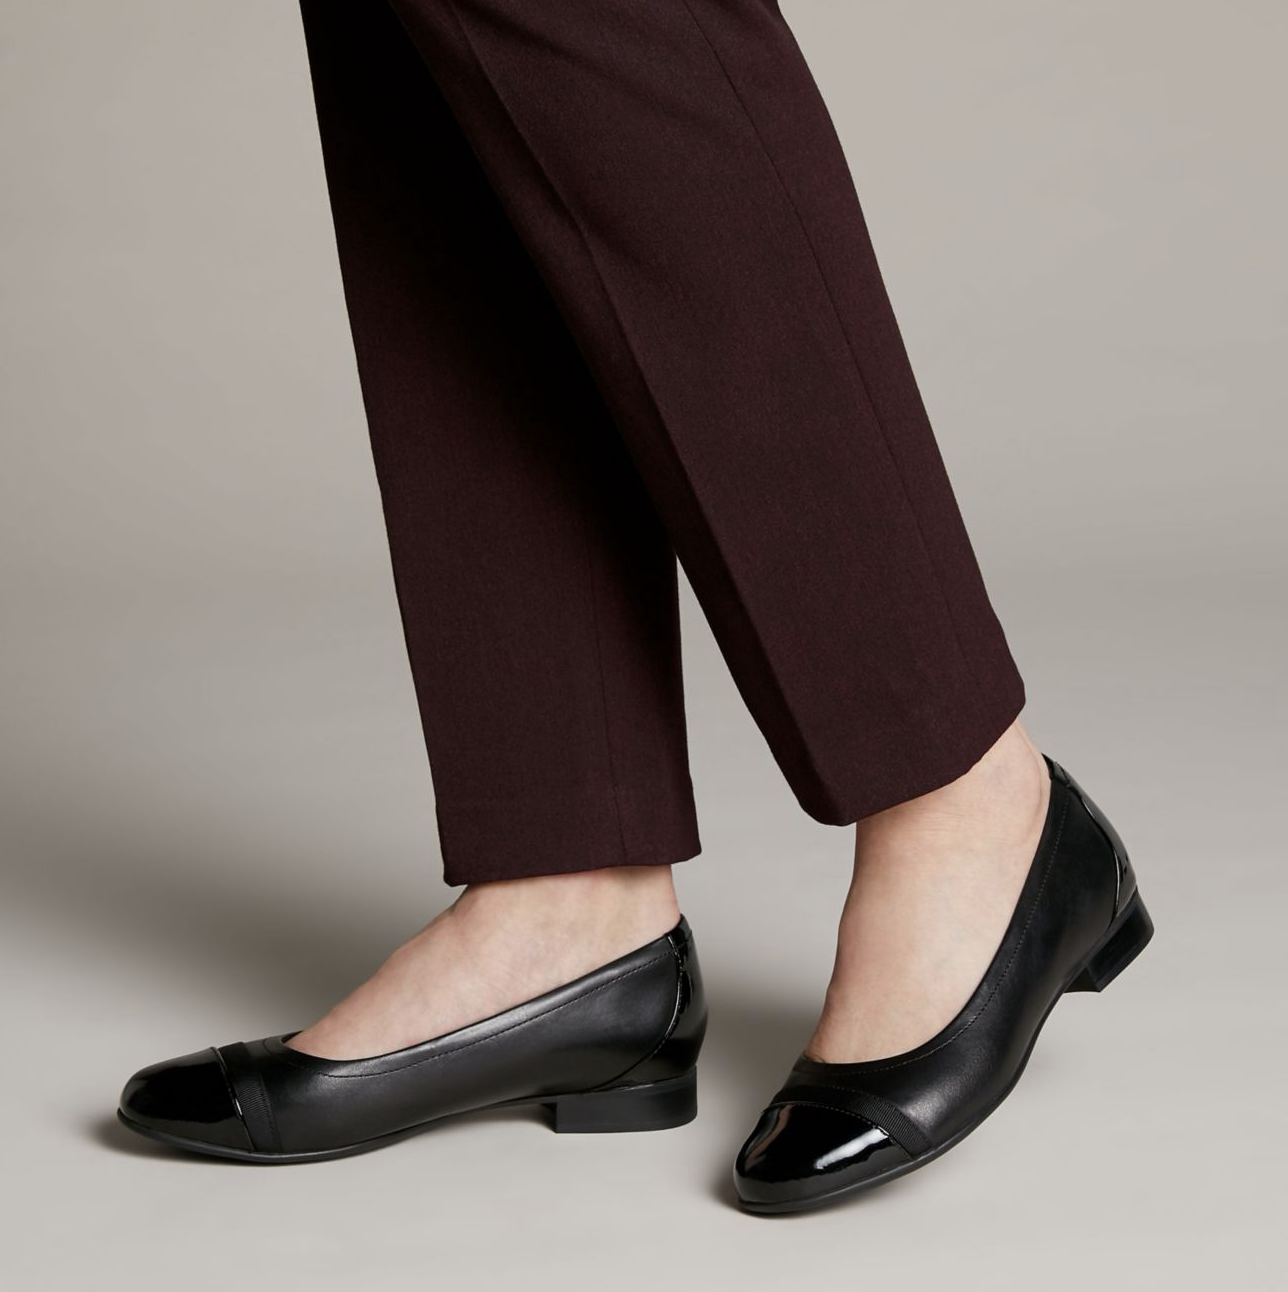 Clarks: Up to 65% off + extra 30% off sale styles